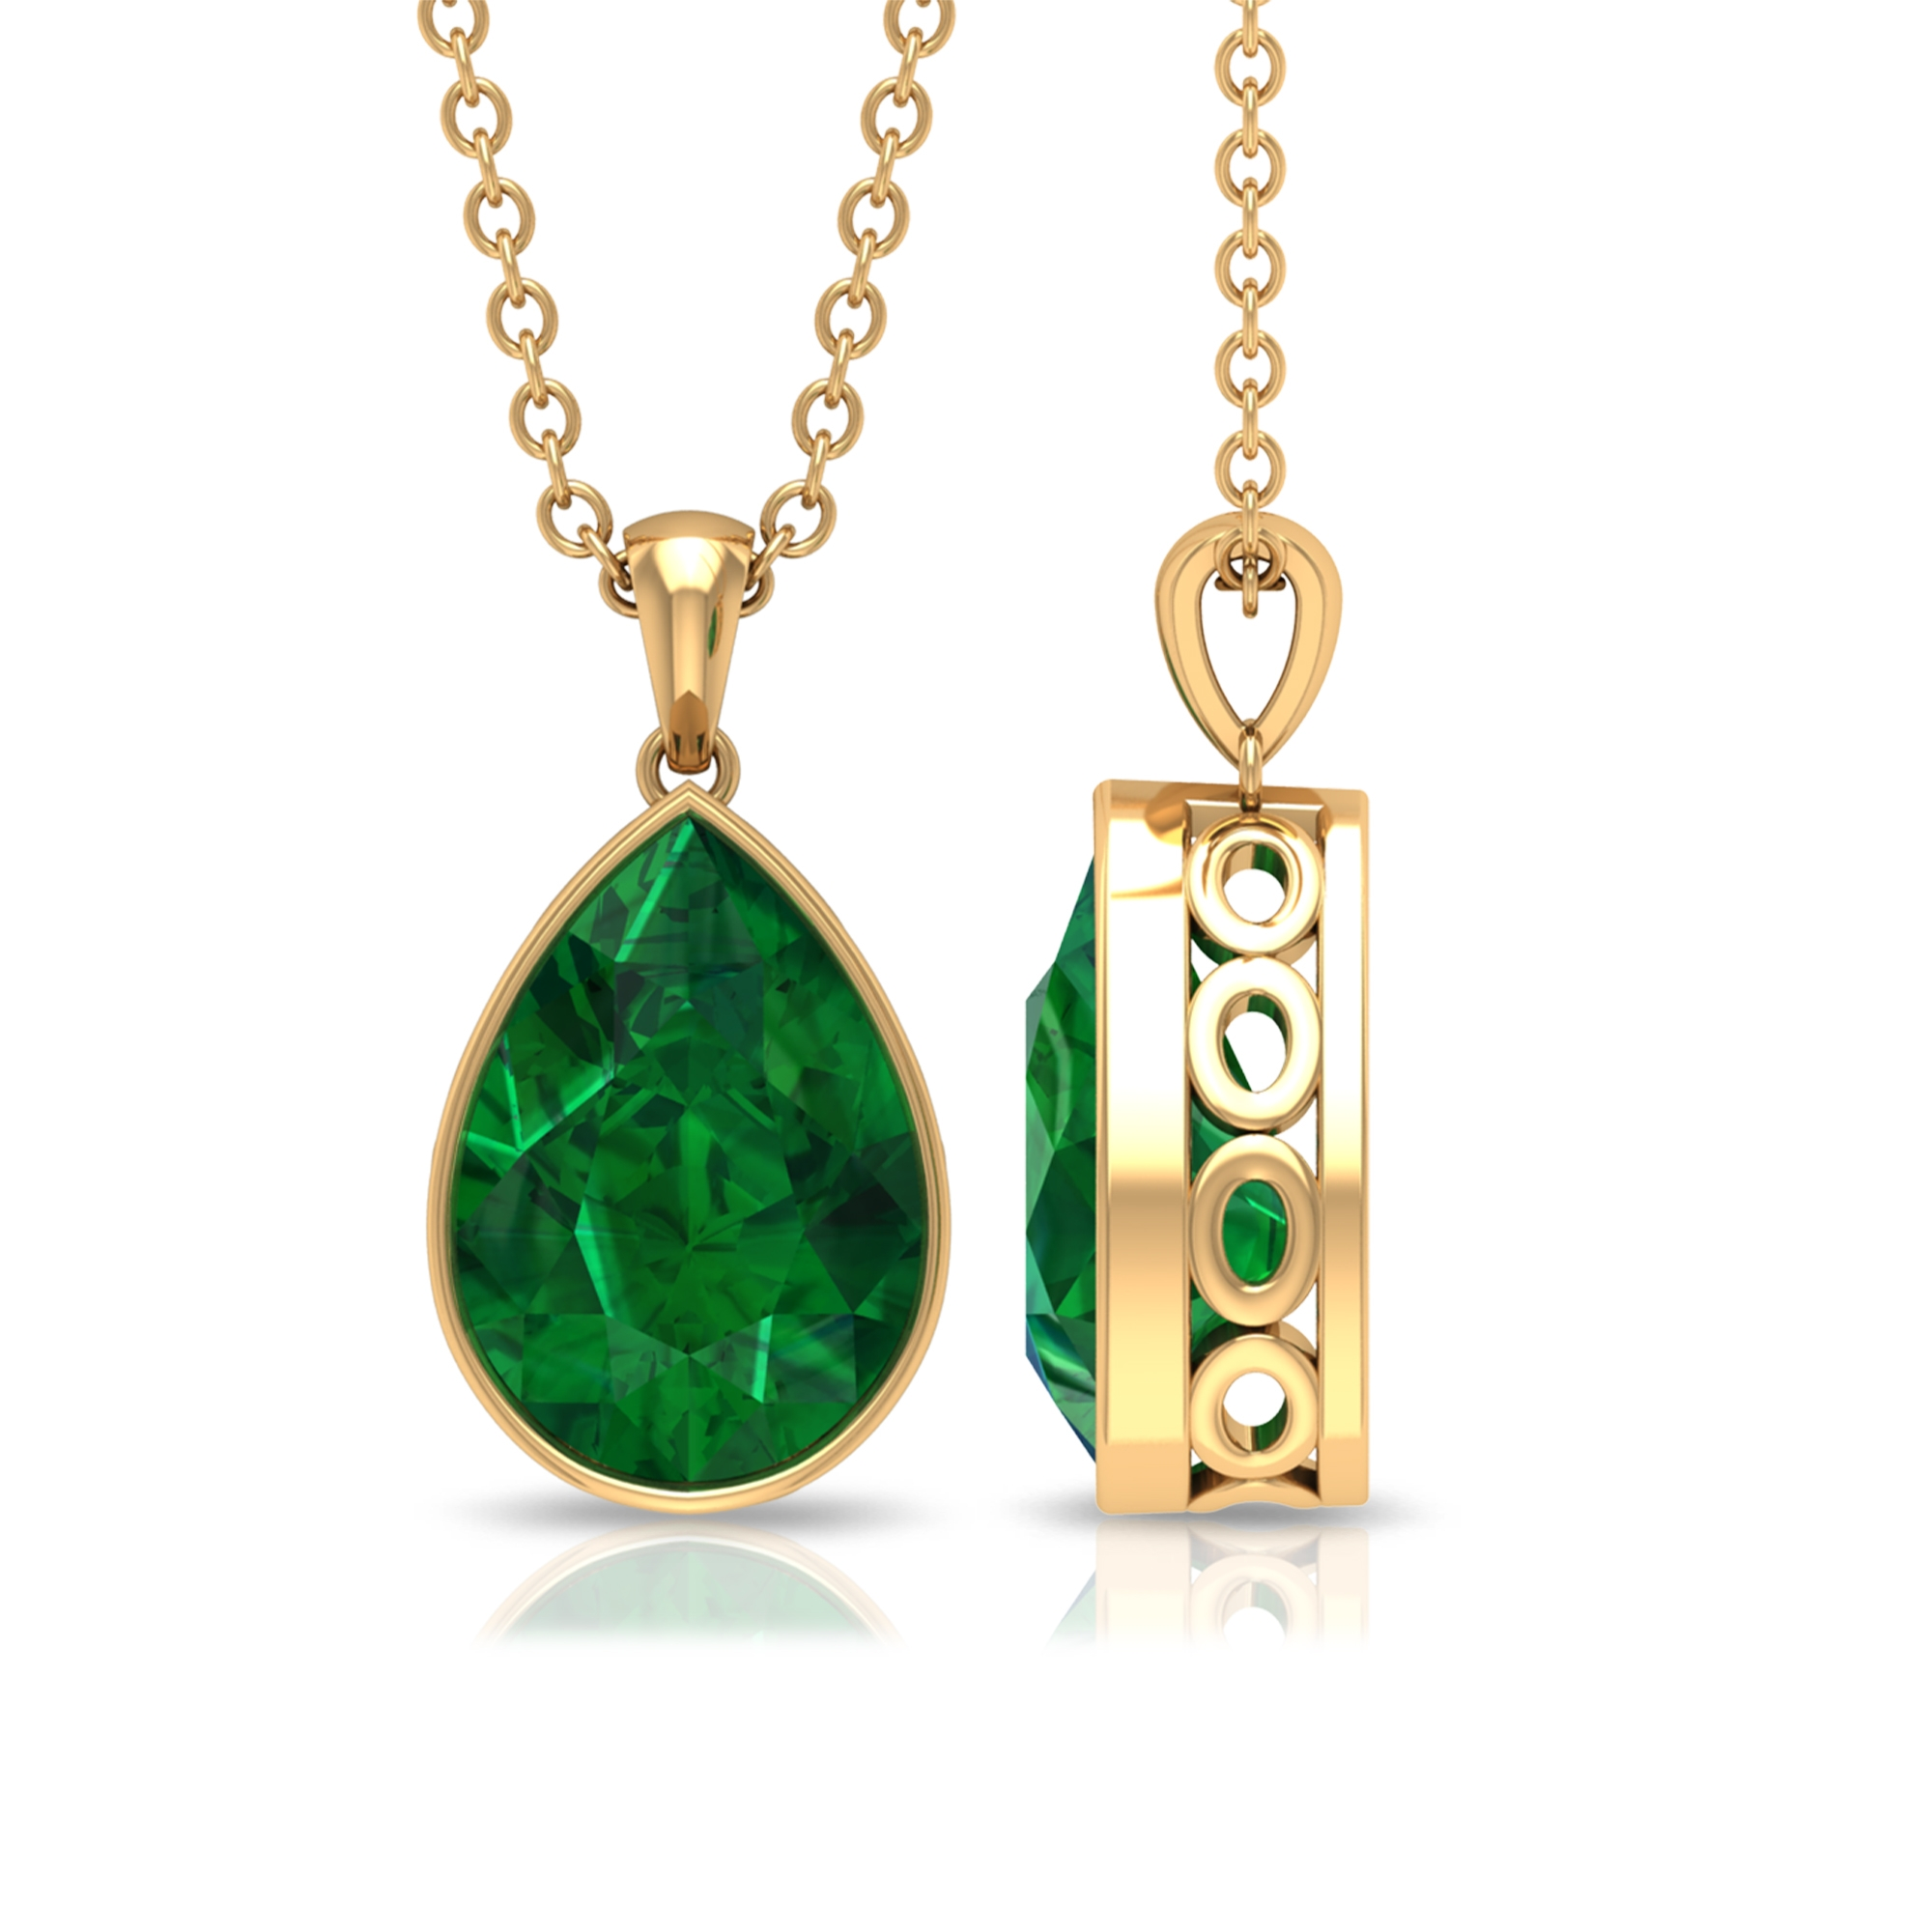 7X10 MM Pear Cut Emerald Solitaire Simple Pendant in Bezel Setting for Women